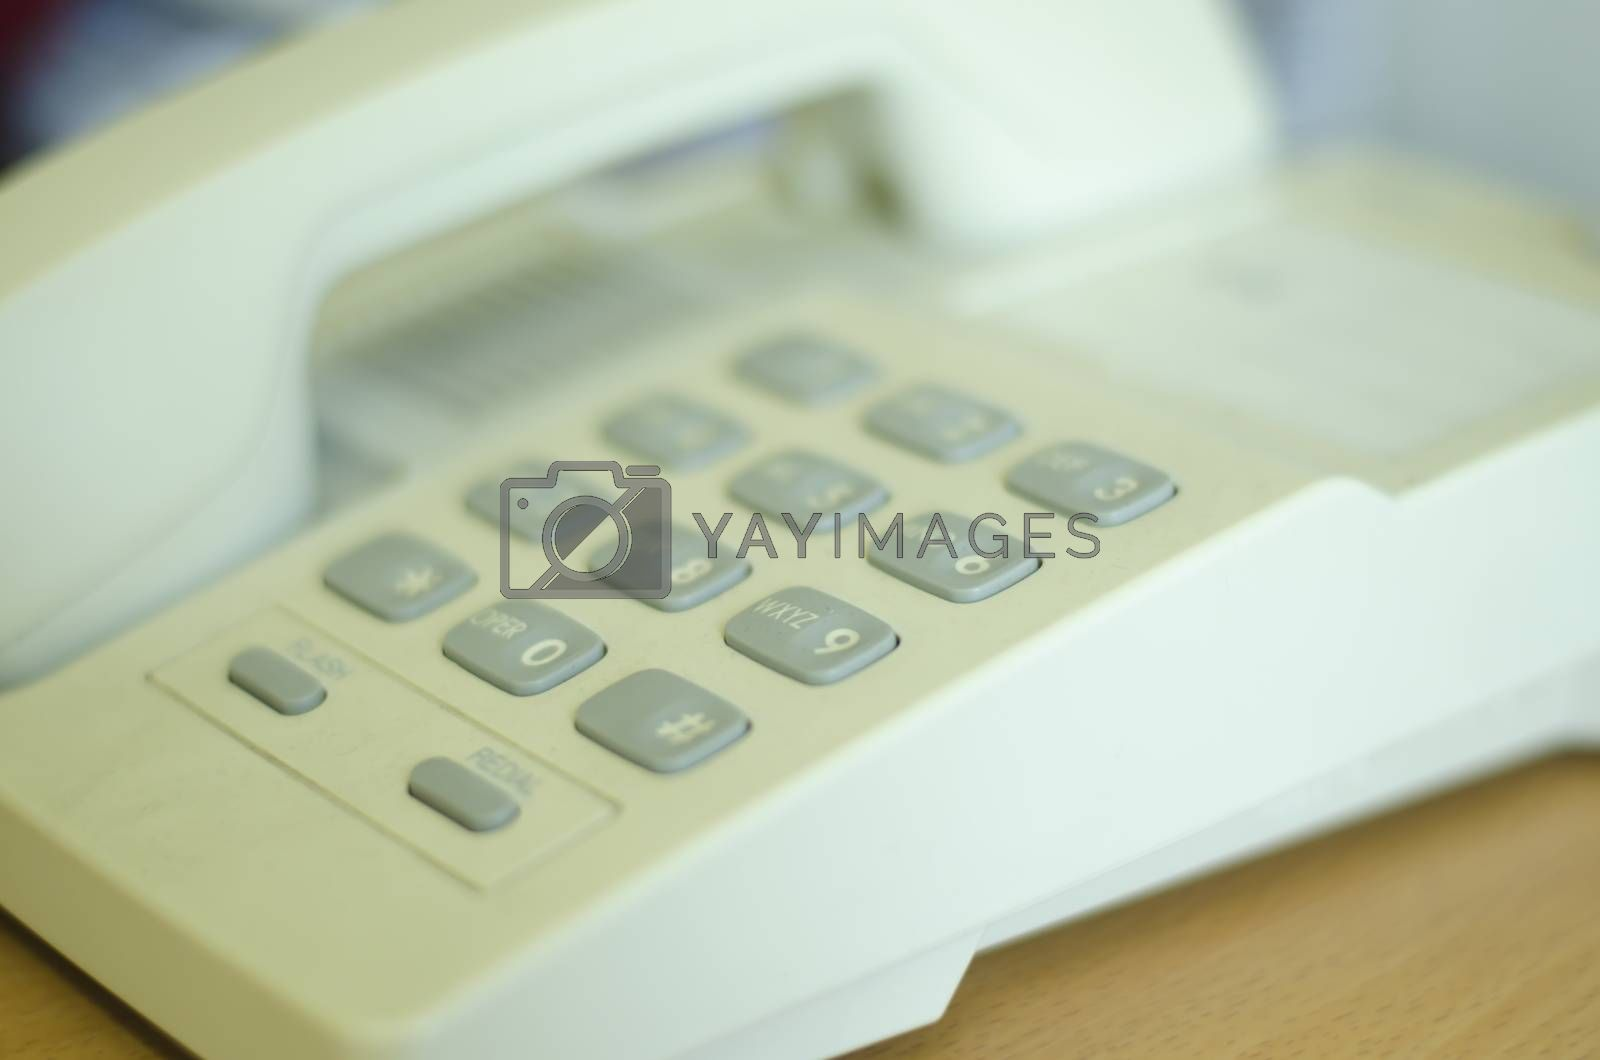 telephone in office can see in many public office